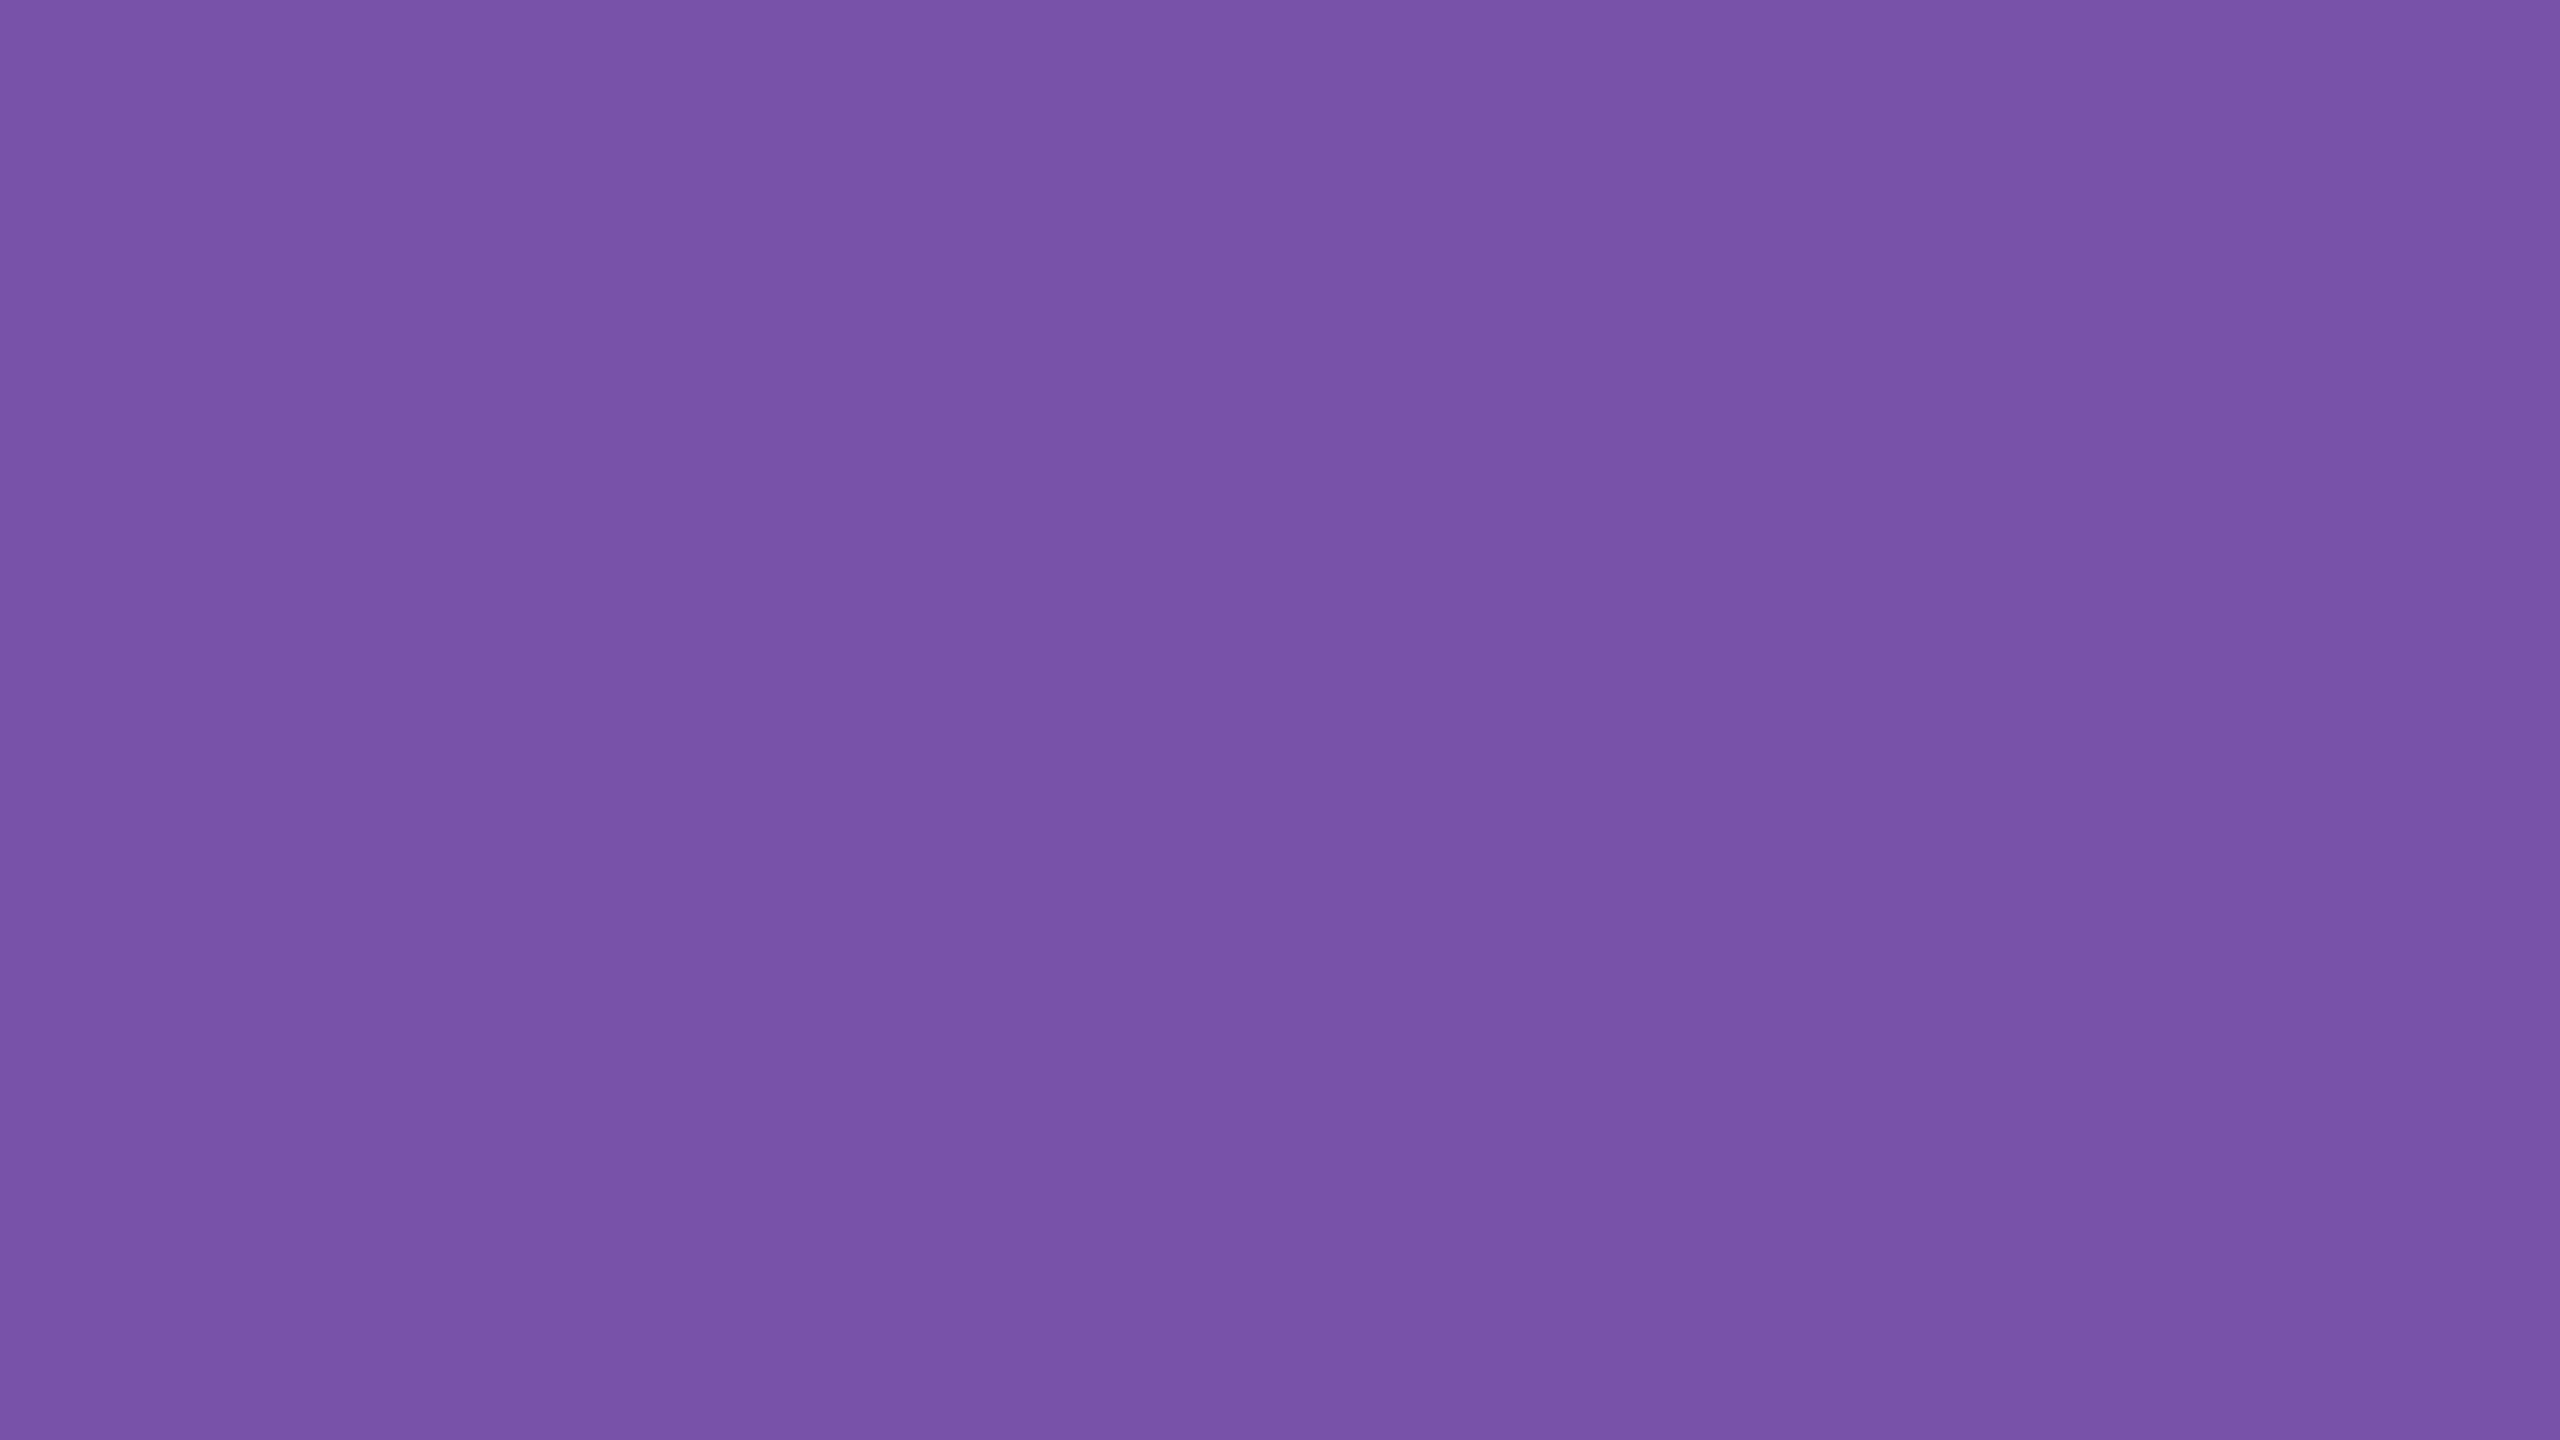 2560x1440 royal purple solid color background